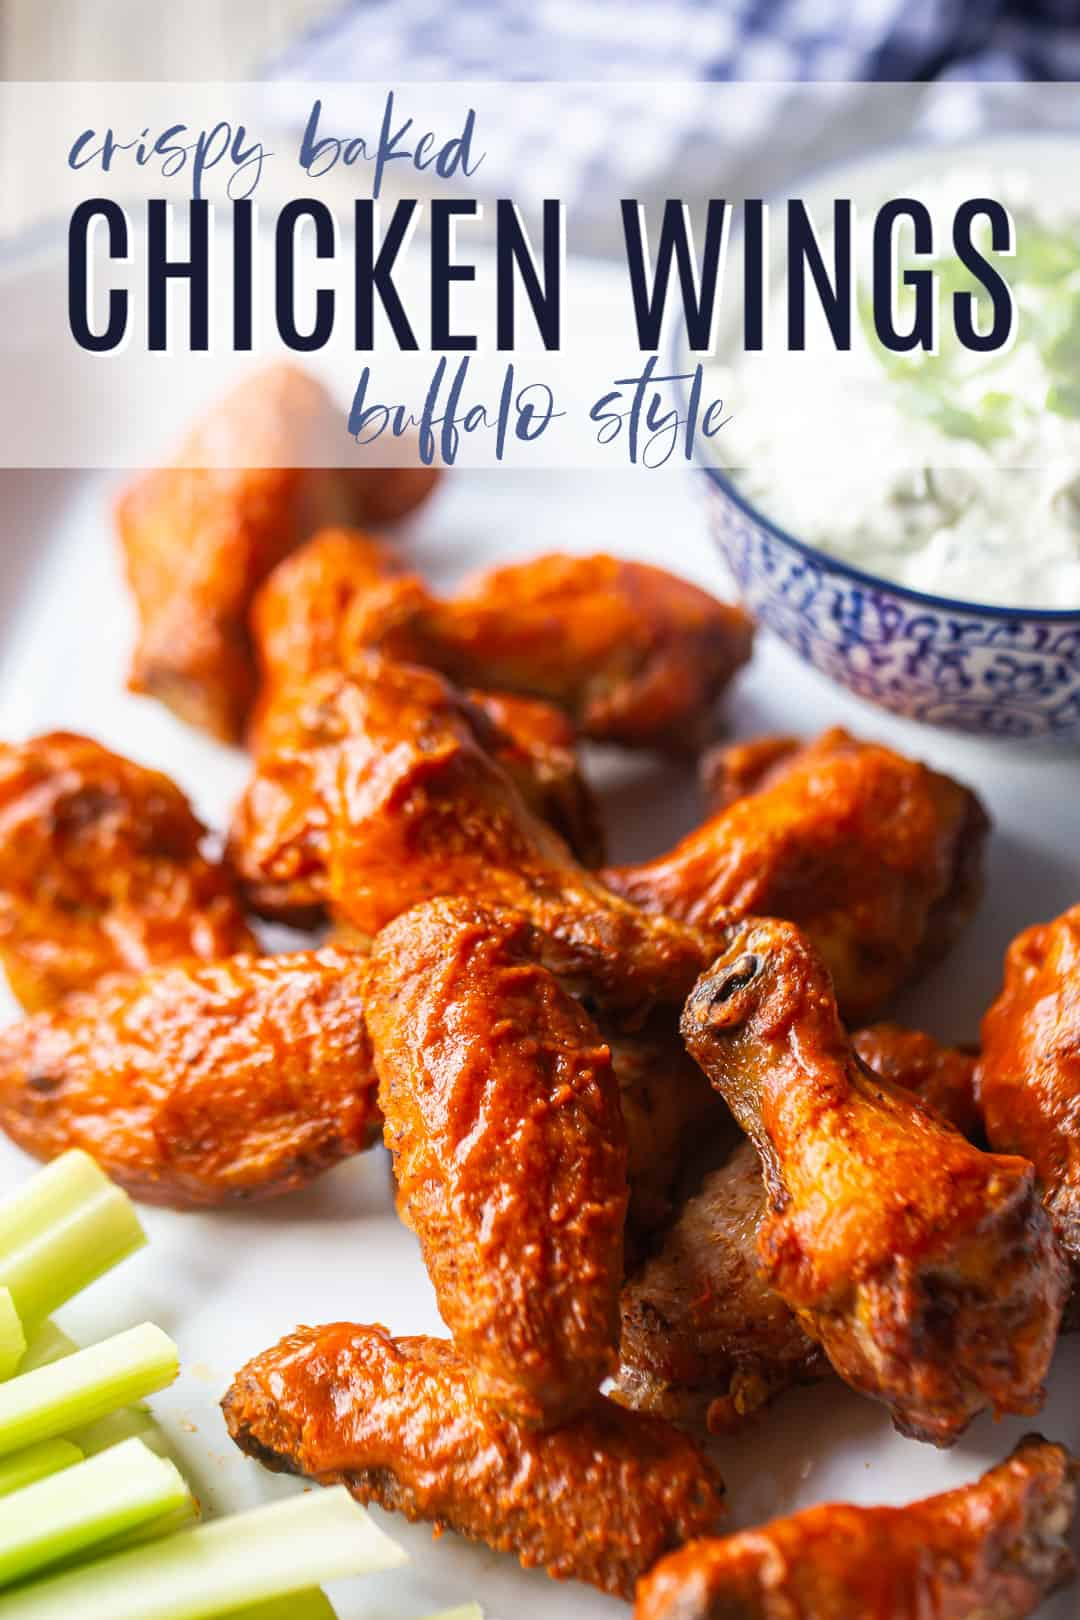 "Crispy baked chicken wings with spicy buffalo sauce, on a platter with celery sticks and blue cheese dip, with a text overlay above reading ""Crispy Baked Chicken Wings, Buffalo Style."""